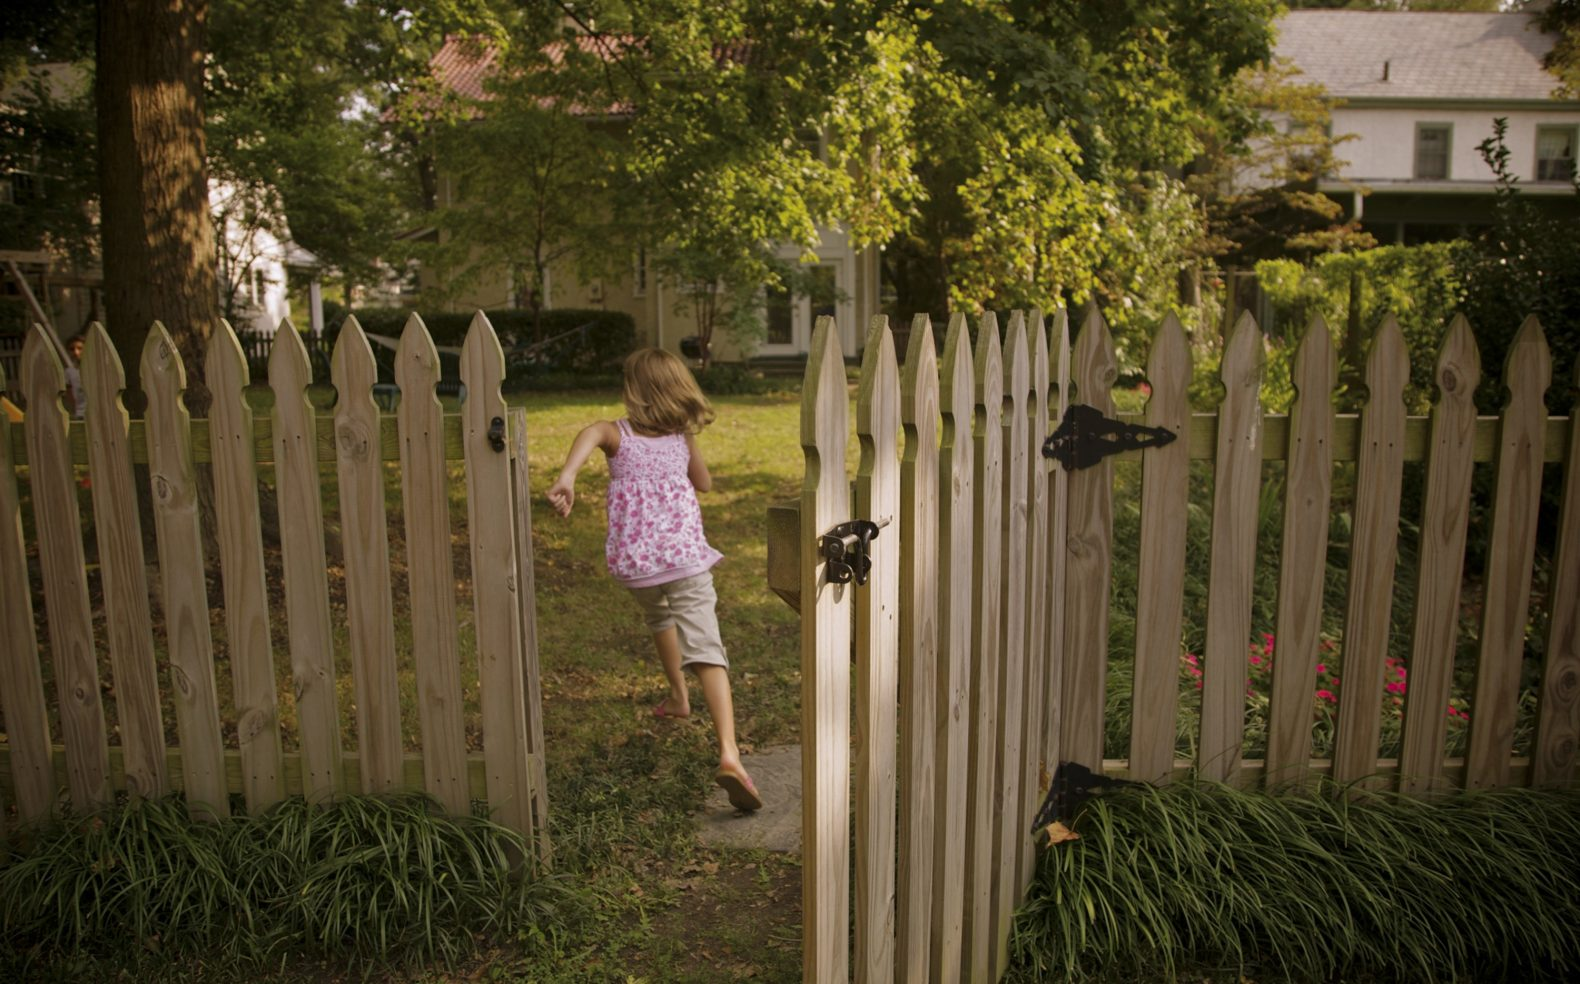 A young girl in spring apparel running through an open fence door into a backyard with greenery and sunlight.